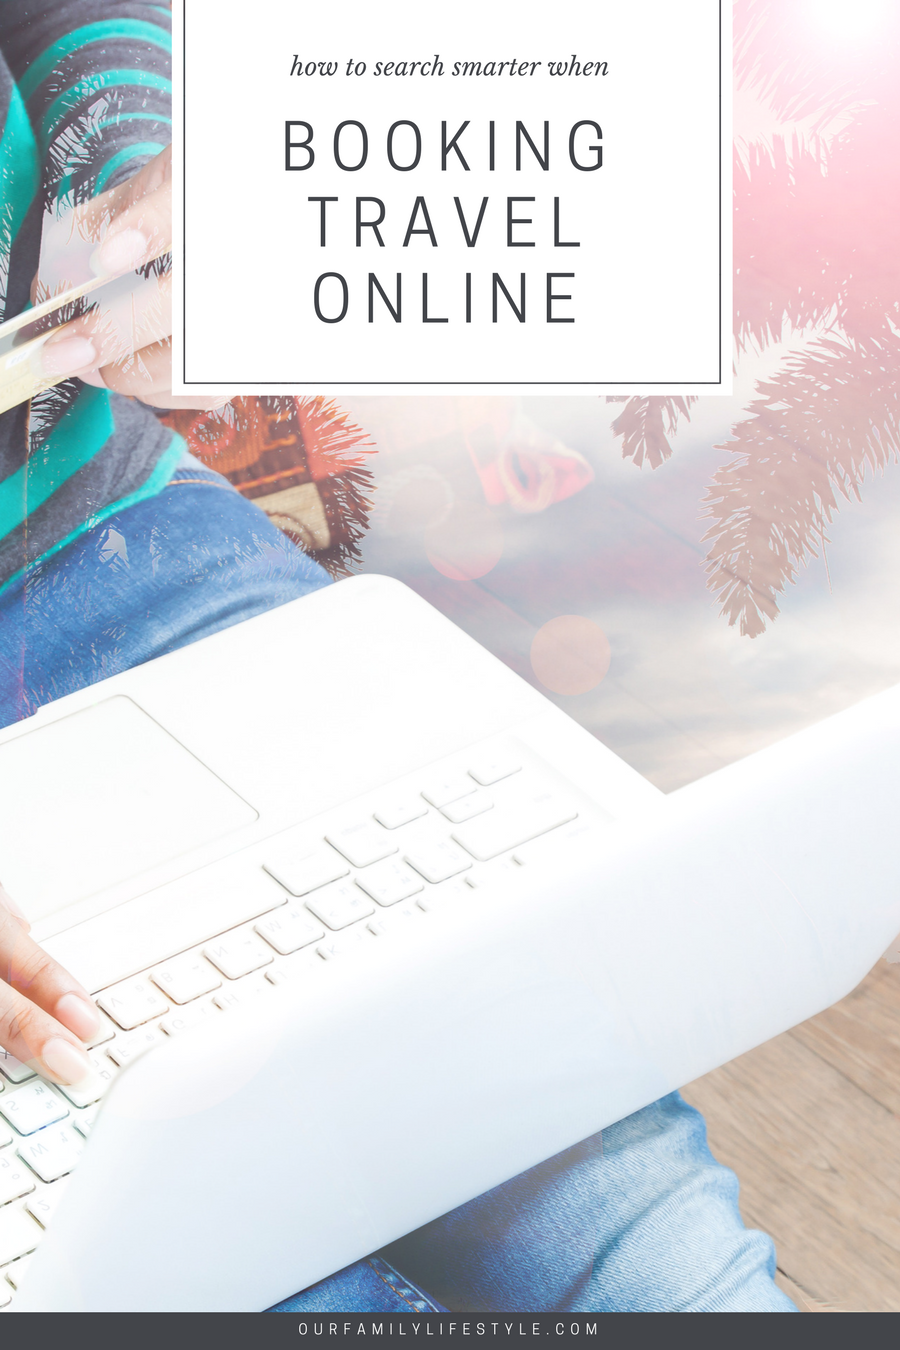 How to Search Smarter When Booking Travel Online